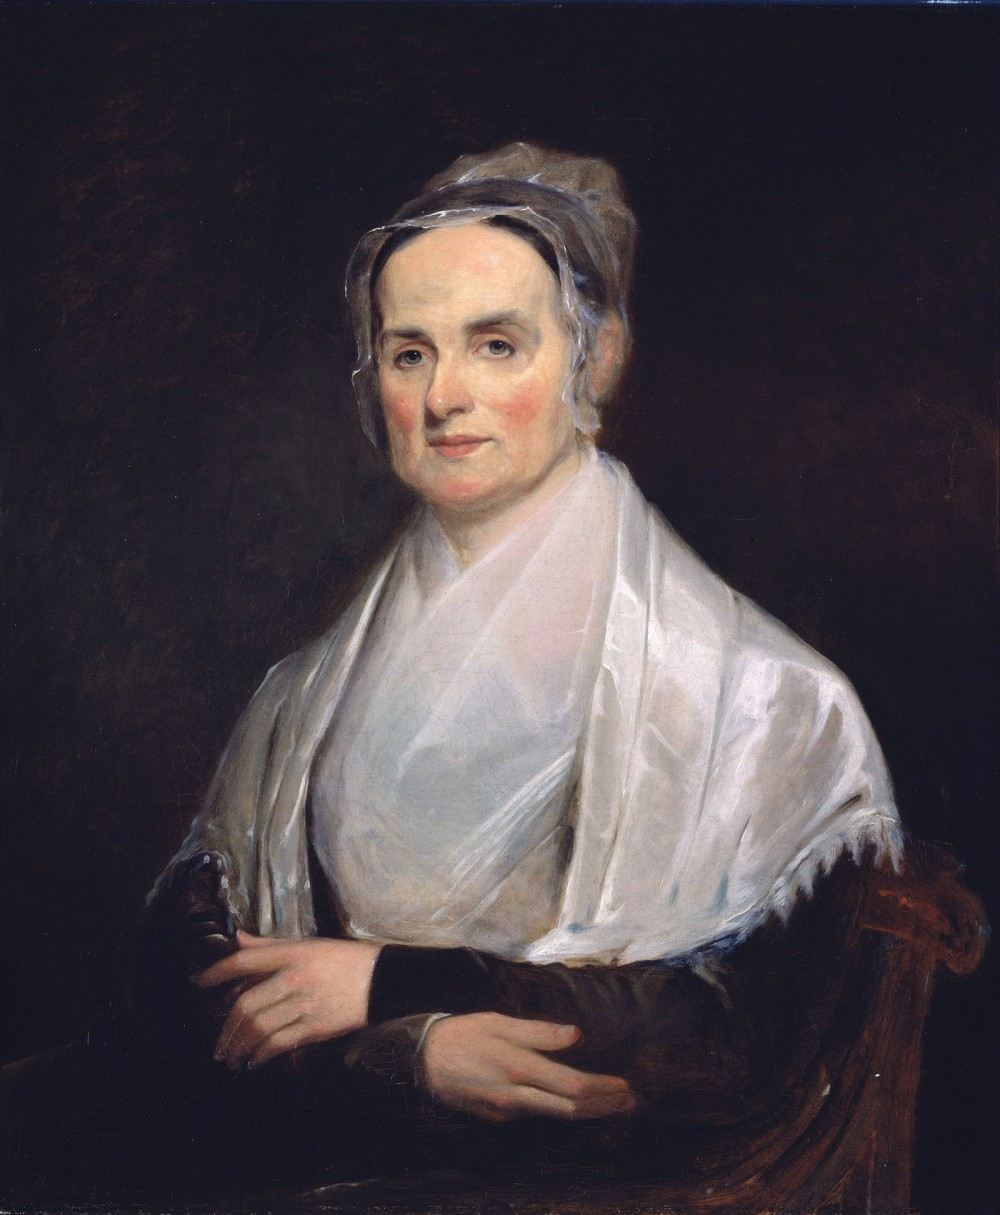 Lucretia Mott campaigned for women's rights, abolition, and equality in the United States. Joseph Kyle (artist), Lucretia Mott, 1842. Wikimedia, http://commons.wikimedia.org/wiki/File:Mott_Lucretia_Painting_Kyle_1841.jpg.